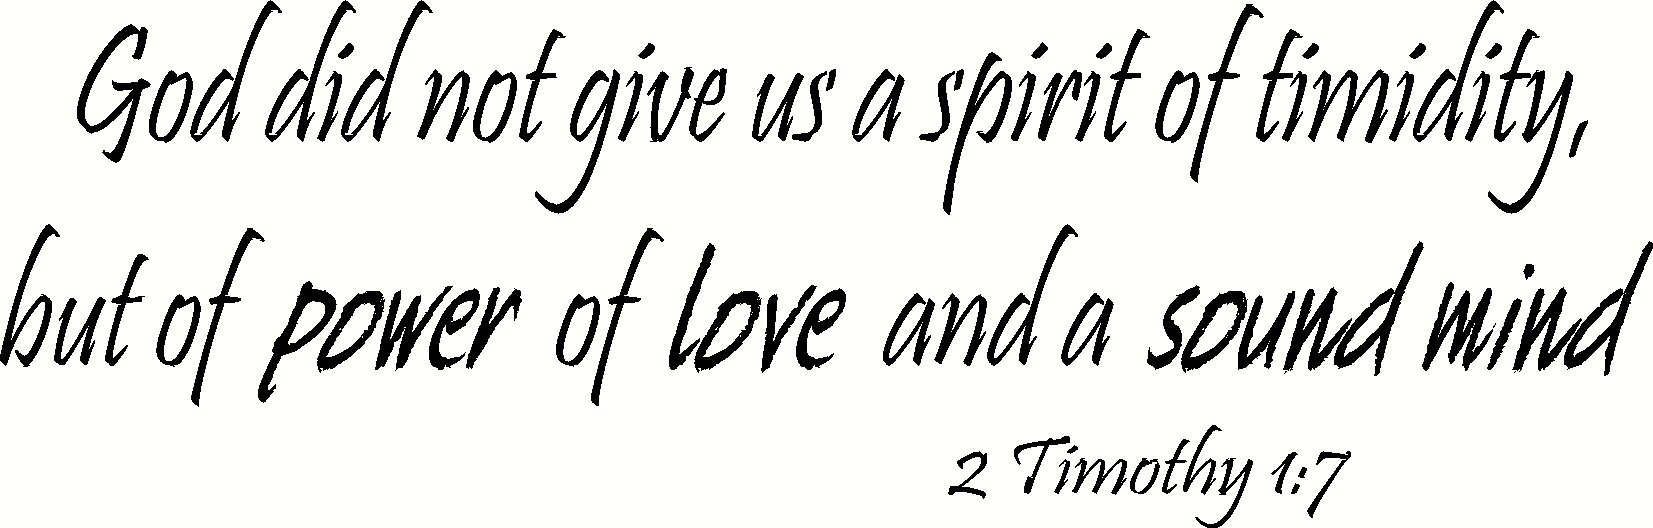 2 Timothy 1:7 Wall Art, God Did Not Give Us a Spirit of Timidity but of Power of Love and of a Sound Mind, Creation Vinyls